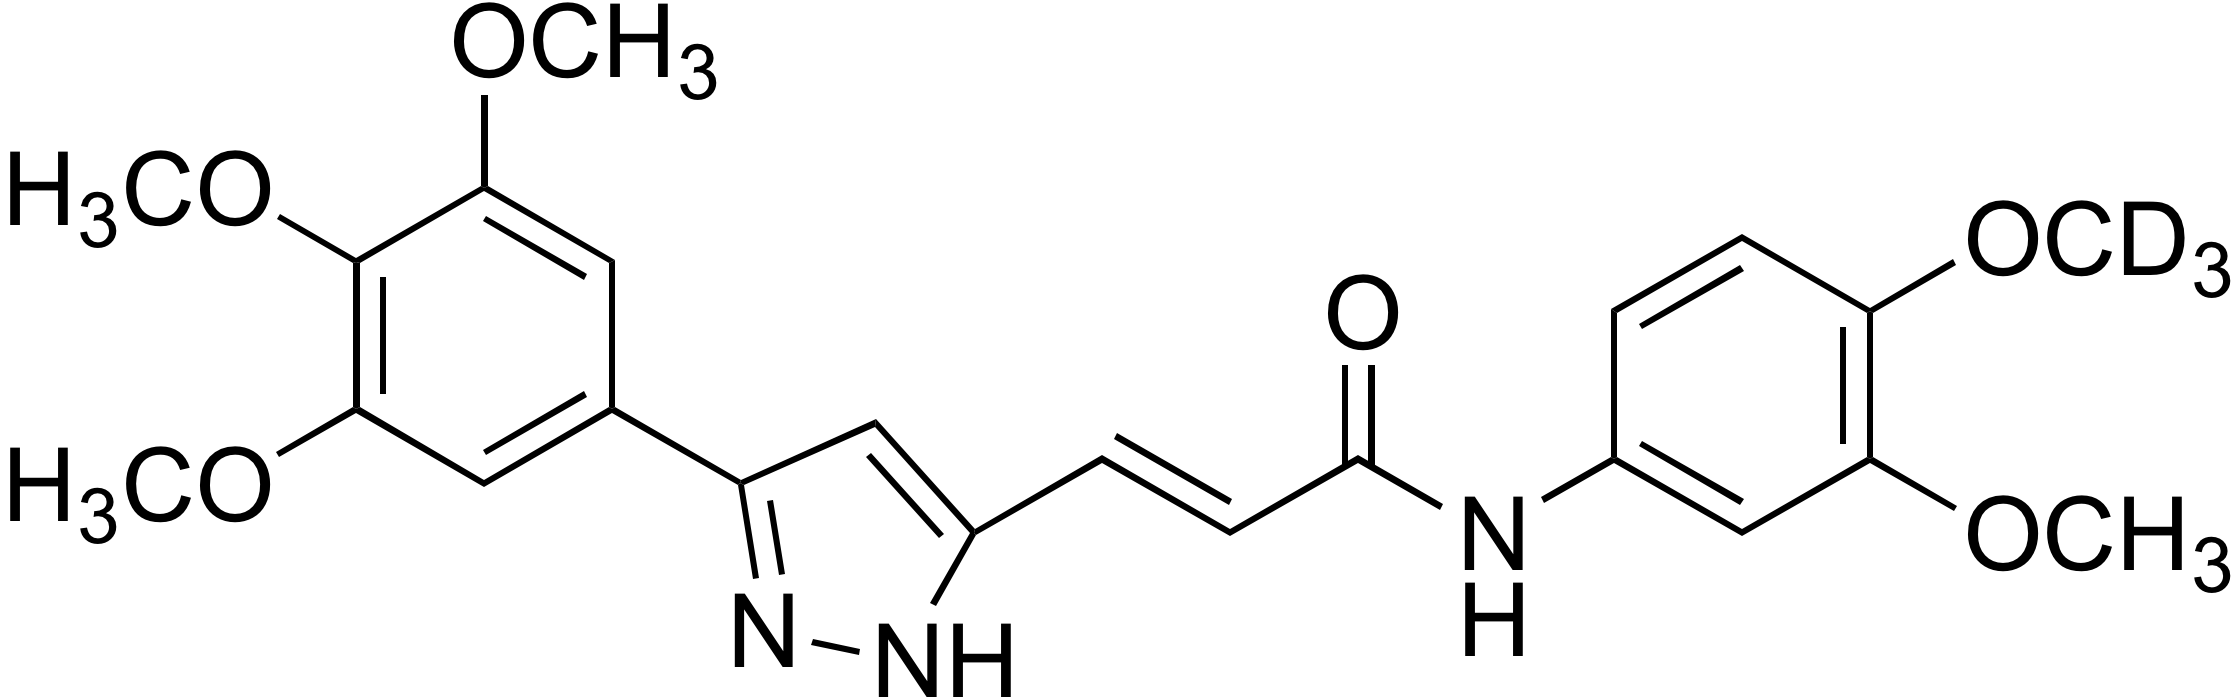 (E)-N-(4-Methoxy-d<sub>3</sub> 3-methoxyphenyl)-3-(3-(3,4,5-trimethoxyphenyl)-1H-pyrazol-5-yl)acrylamide